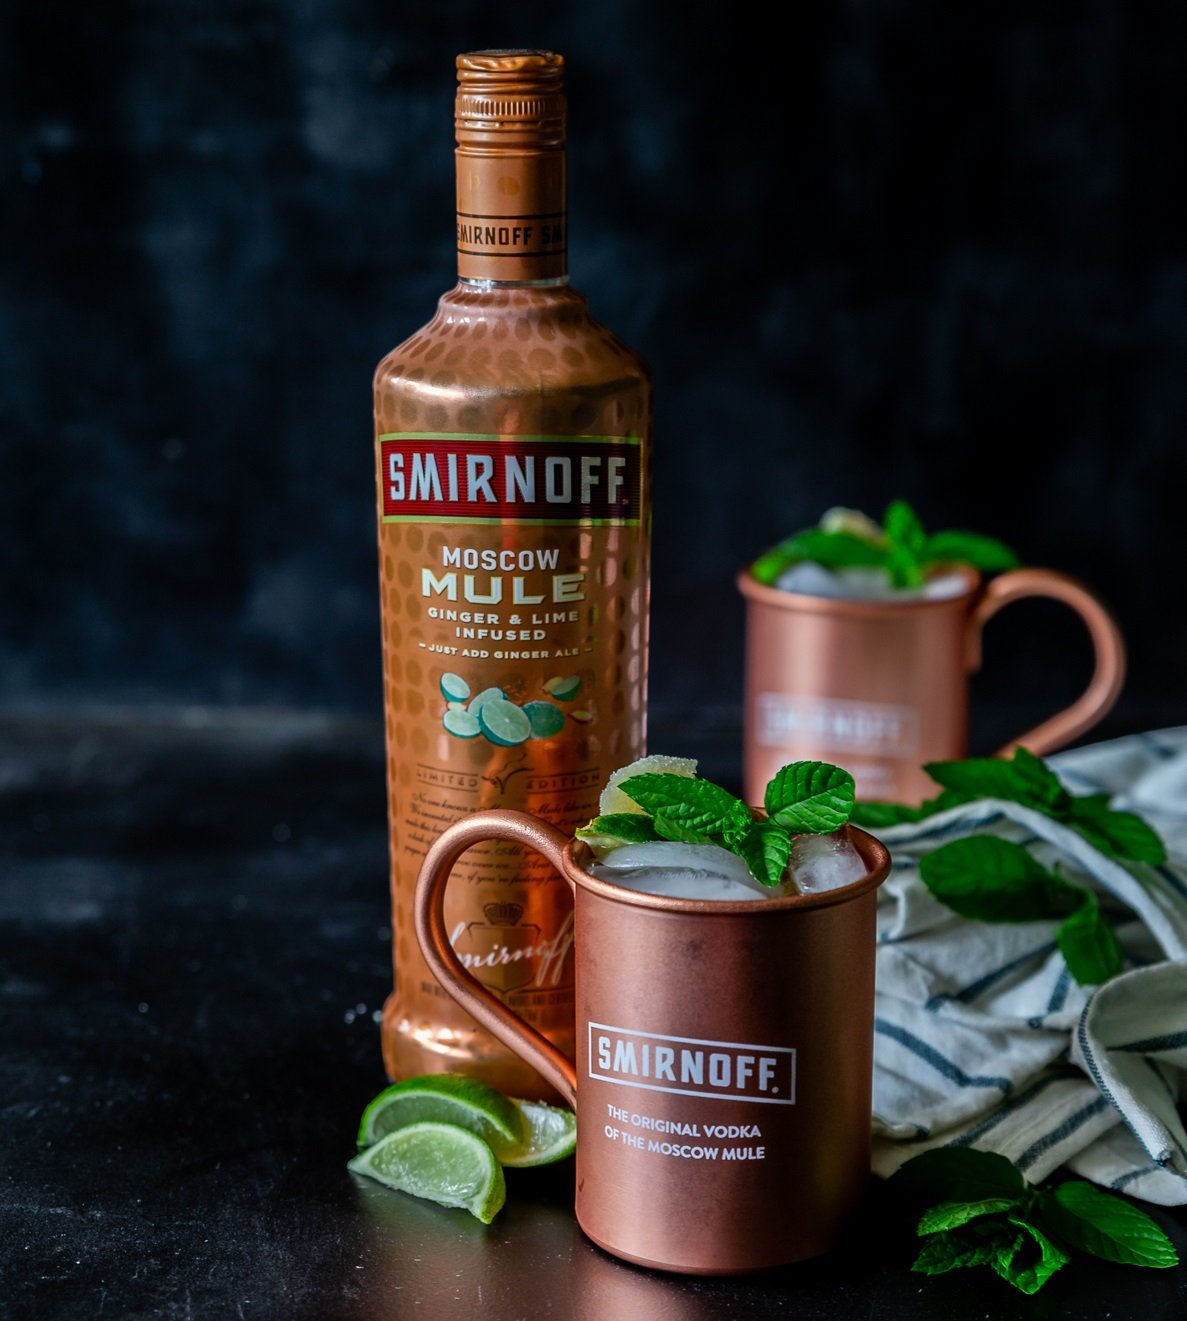 Smirnoff Moscow Mule Ginger Lime